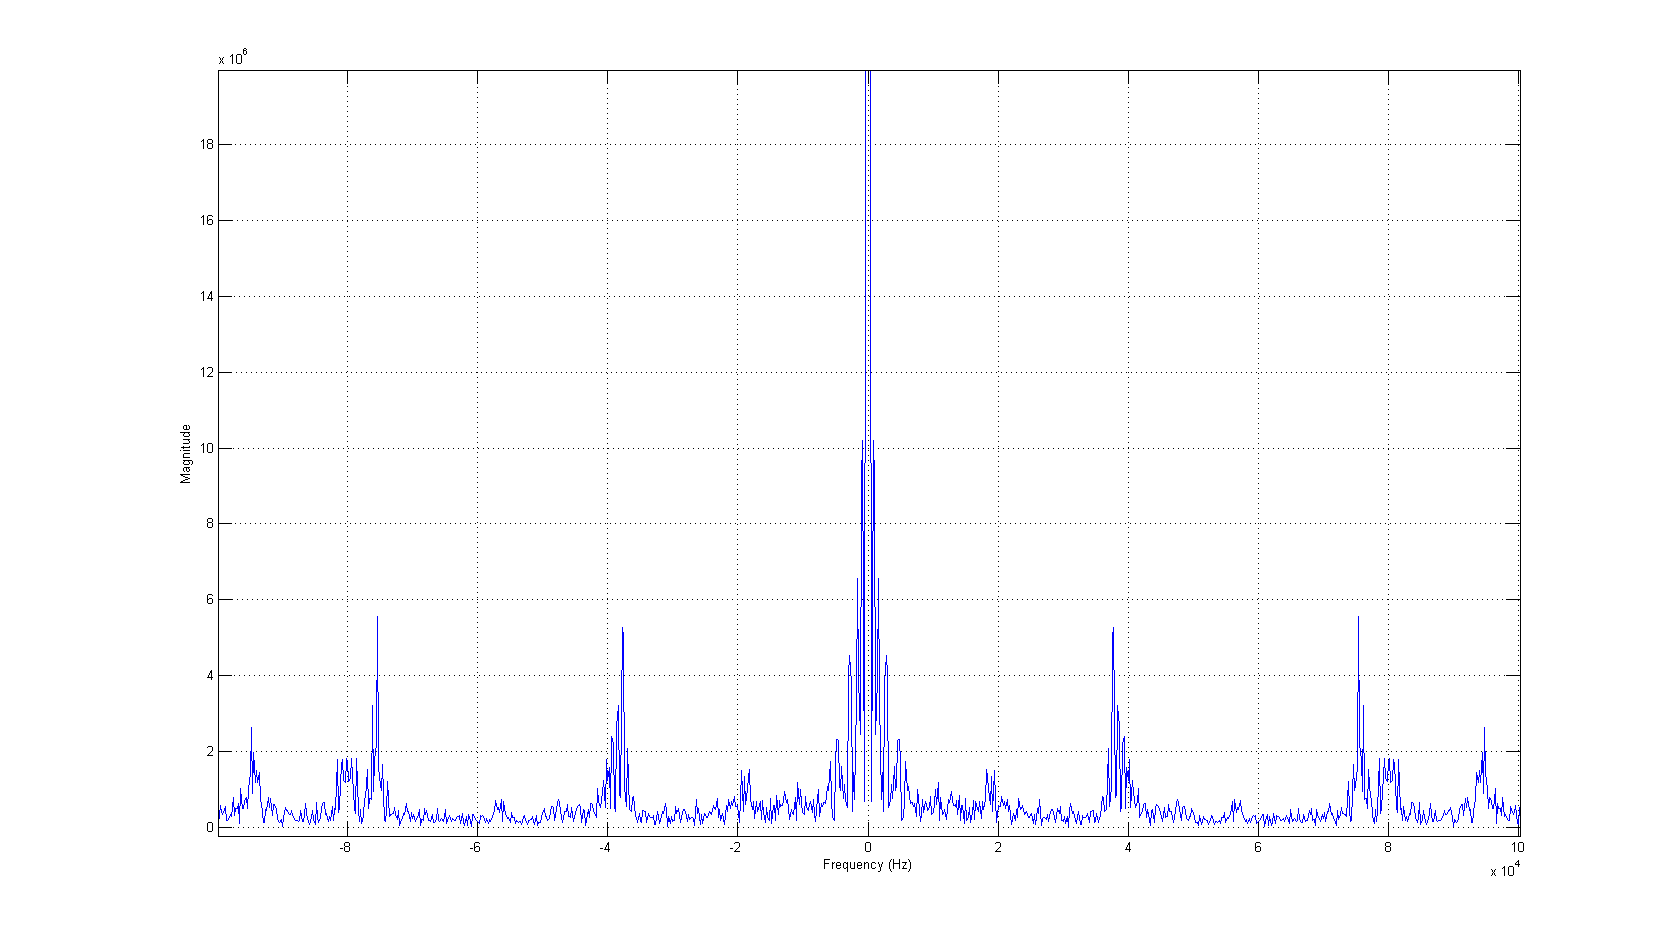 The multiply and square operations are now much clearer. In this case, the lower peaks are different for the multiply and square operations, and will become the distinguisher.